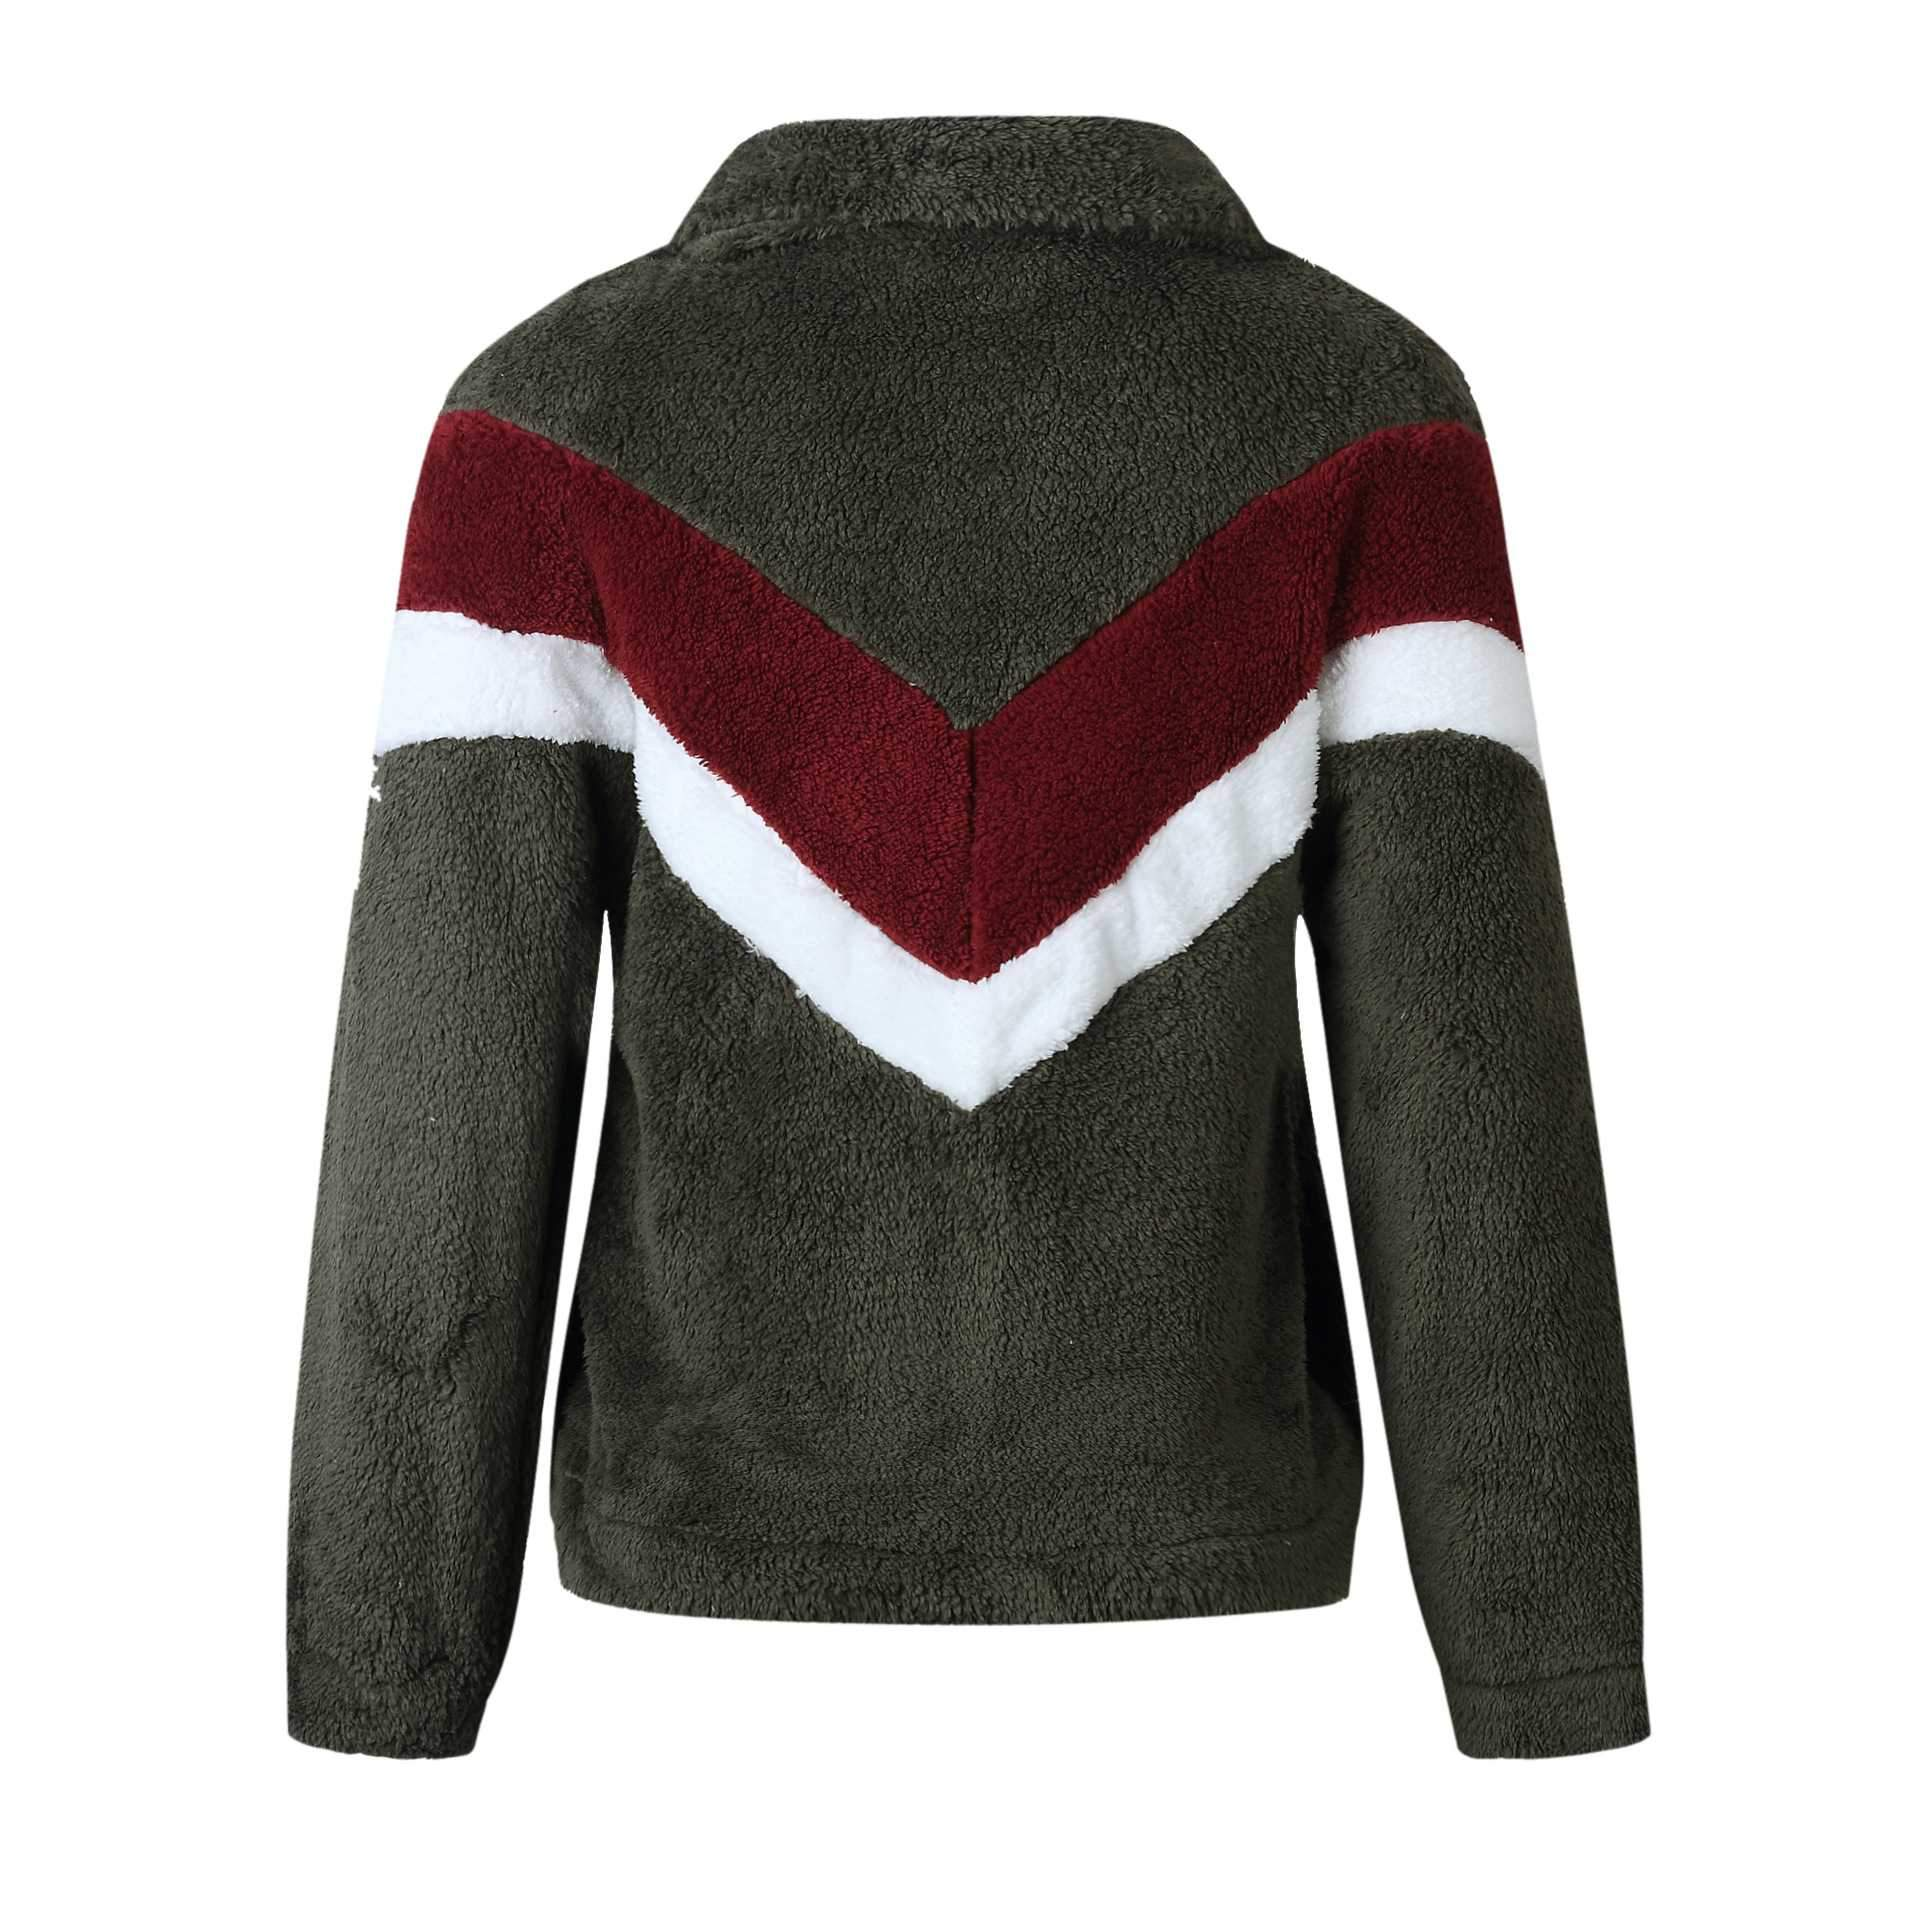 Cozy Colorblock Chevron Half Zip Sherpa Pullover Faux Fur Sweatshirt Jacket